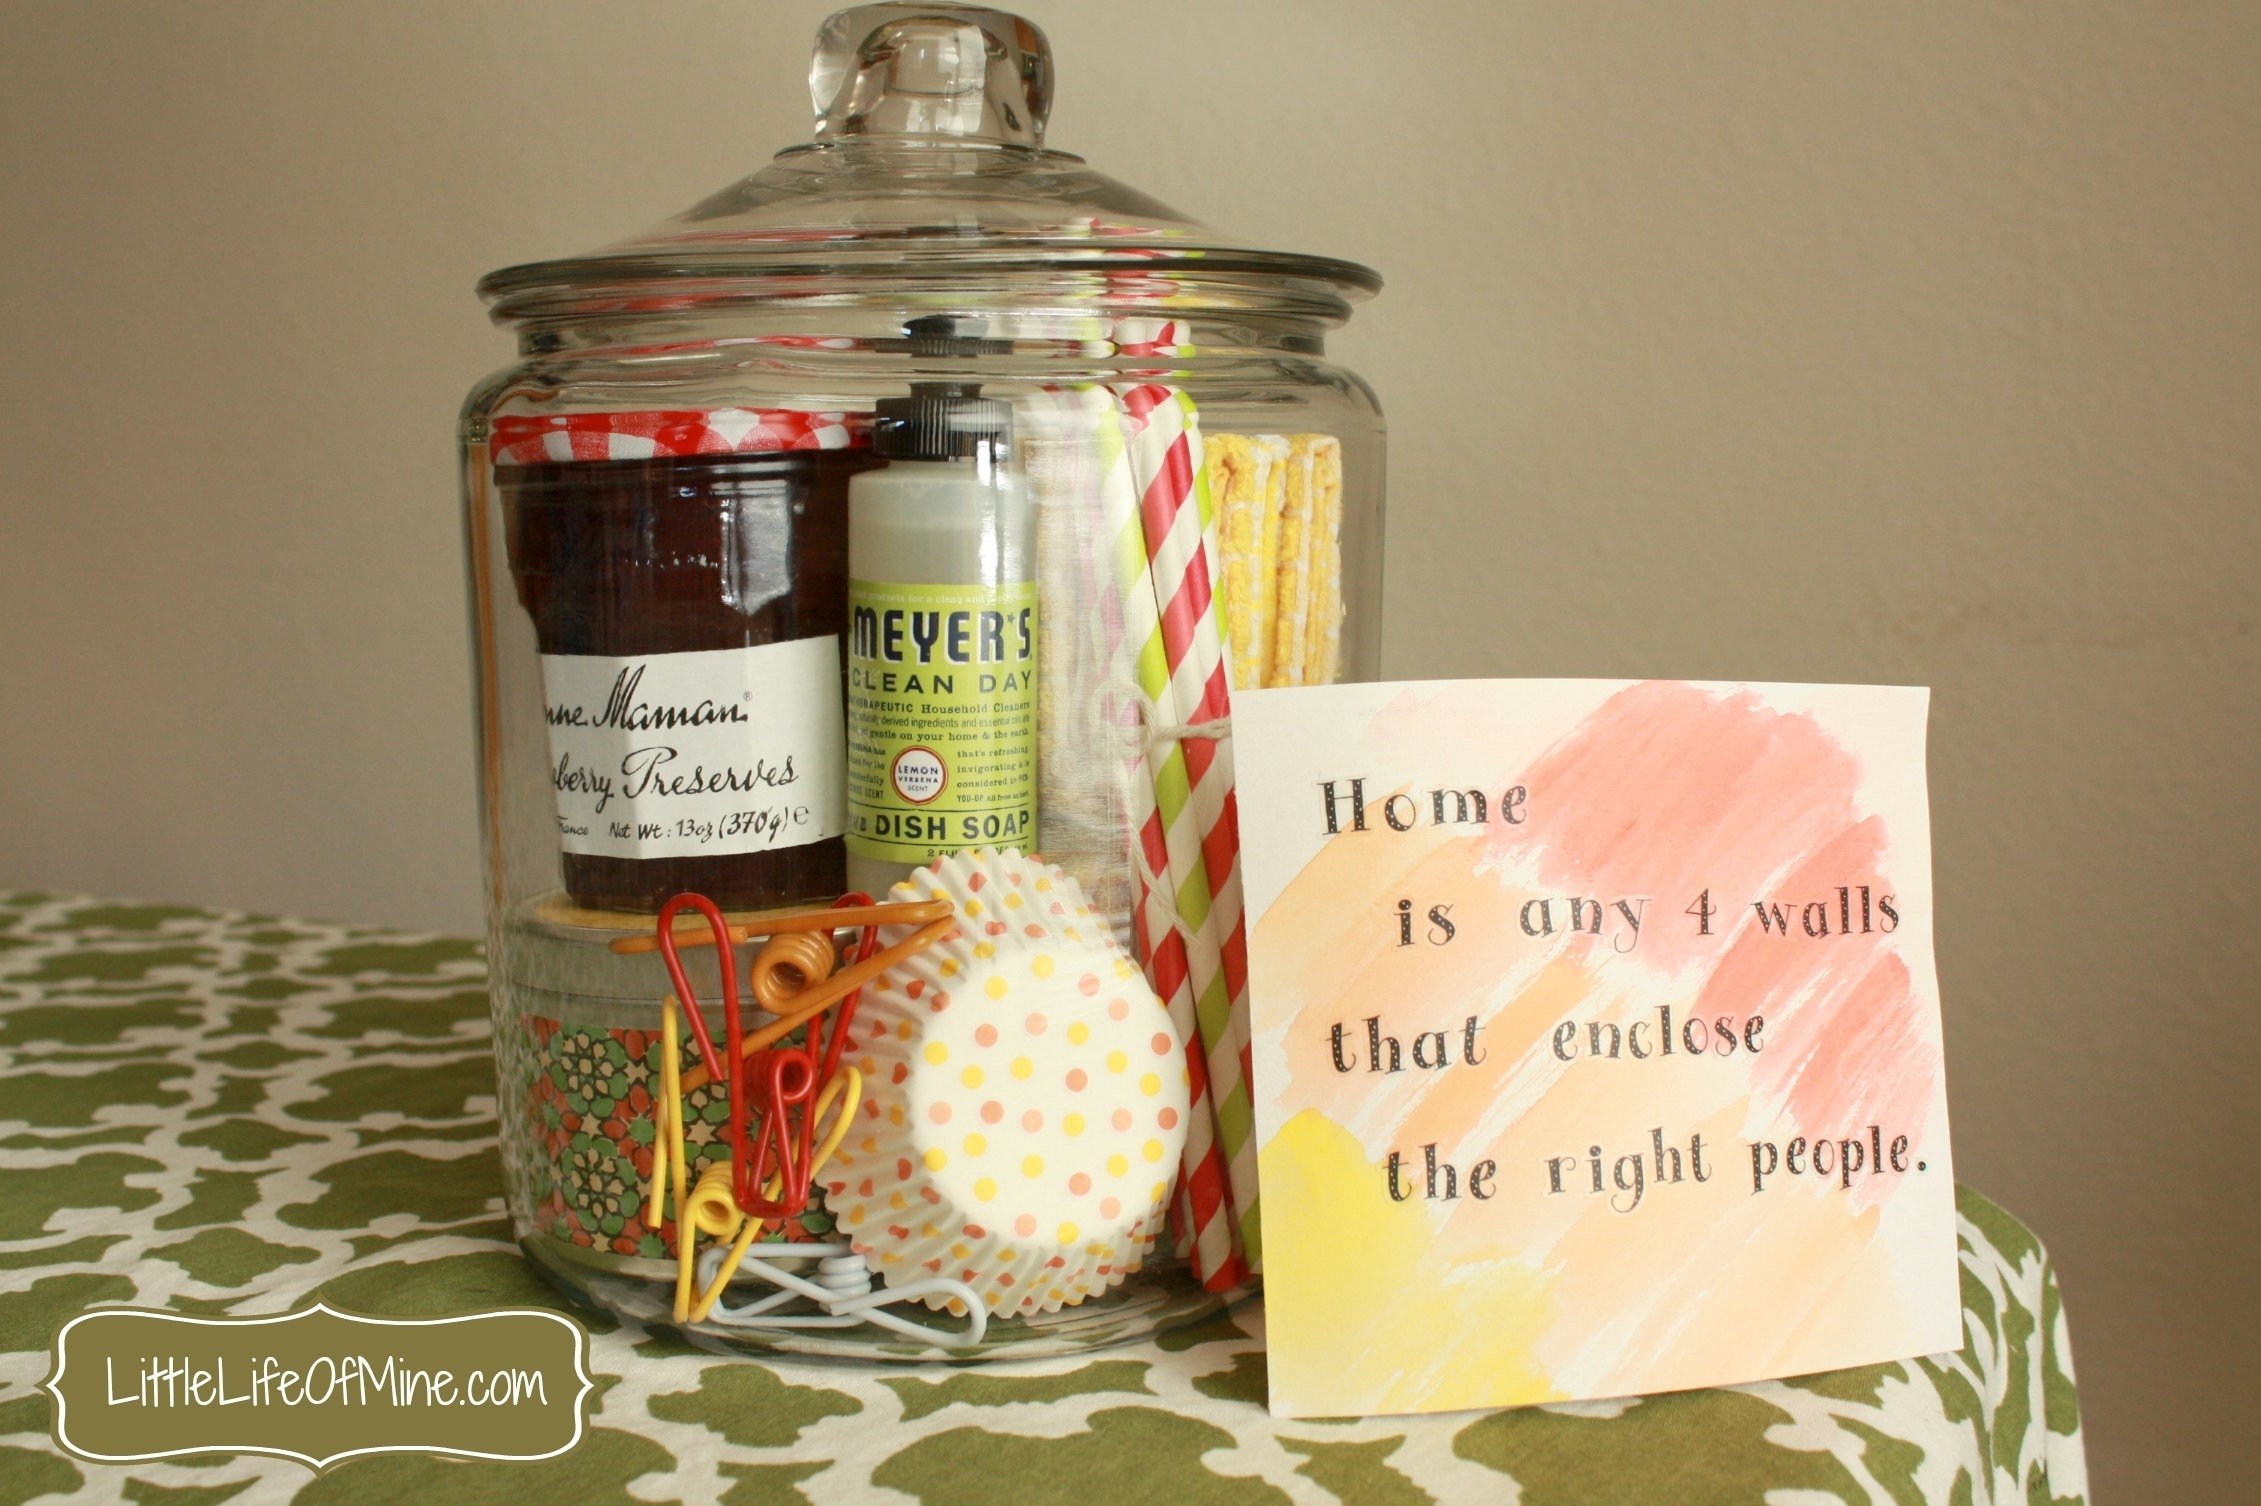 10 Beautiful Housewarming Gifts Ideas For Couples housewarming gift in a jar littlelifeofmine 2020